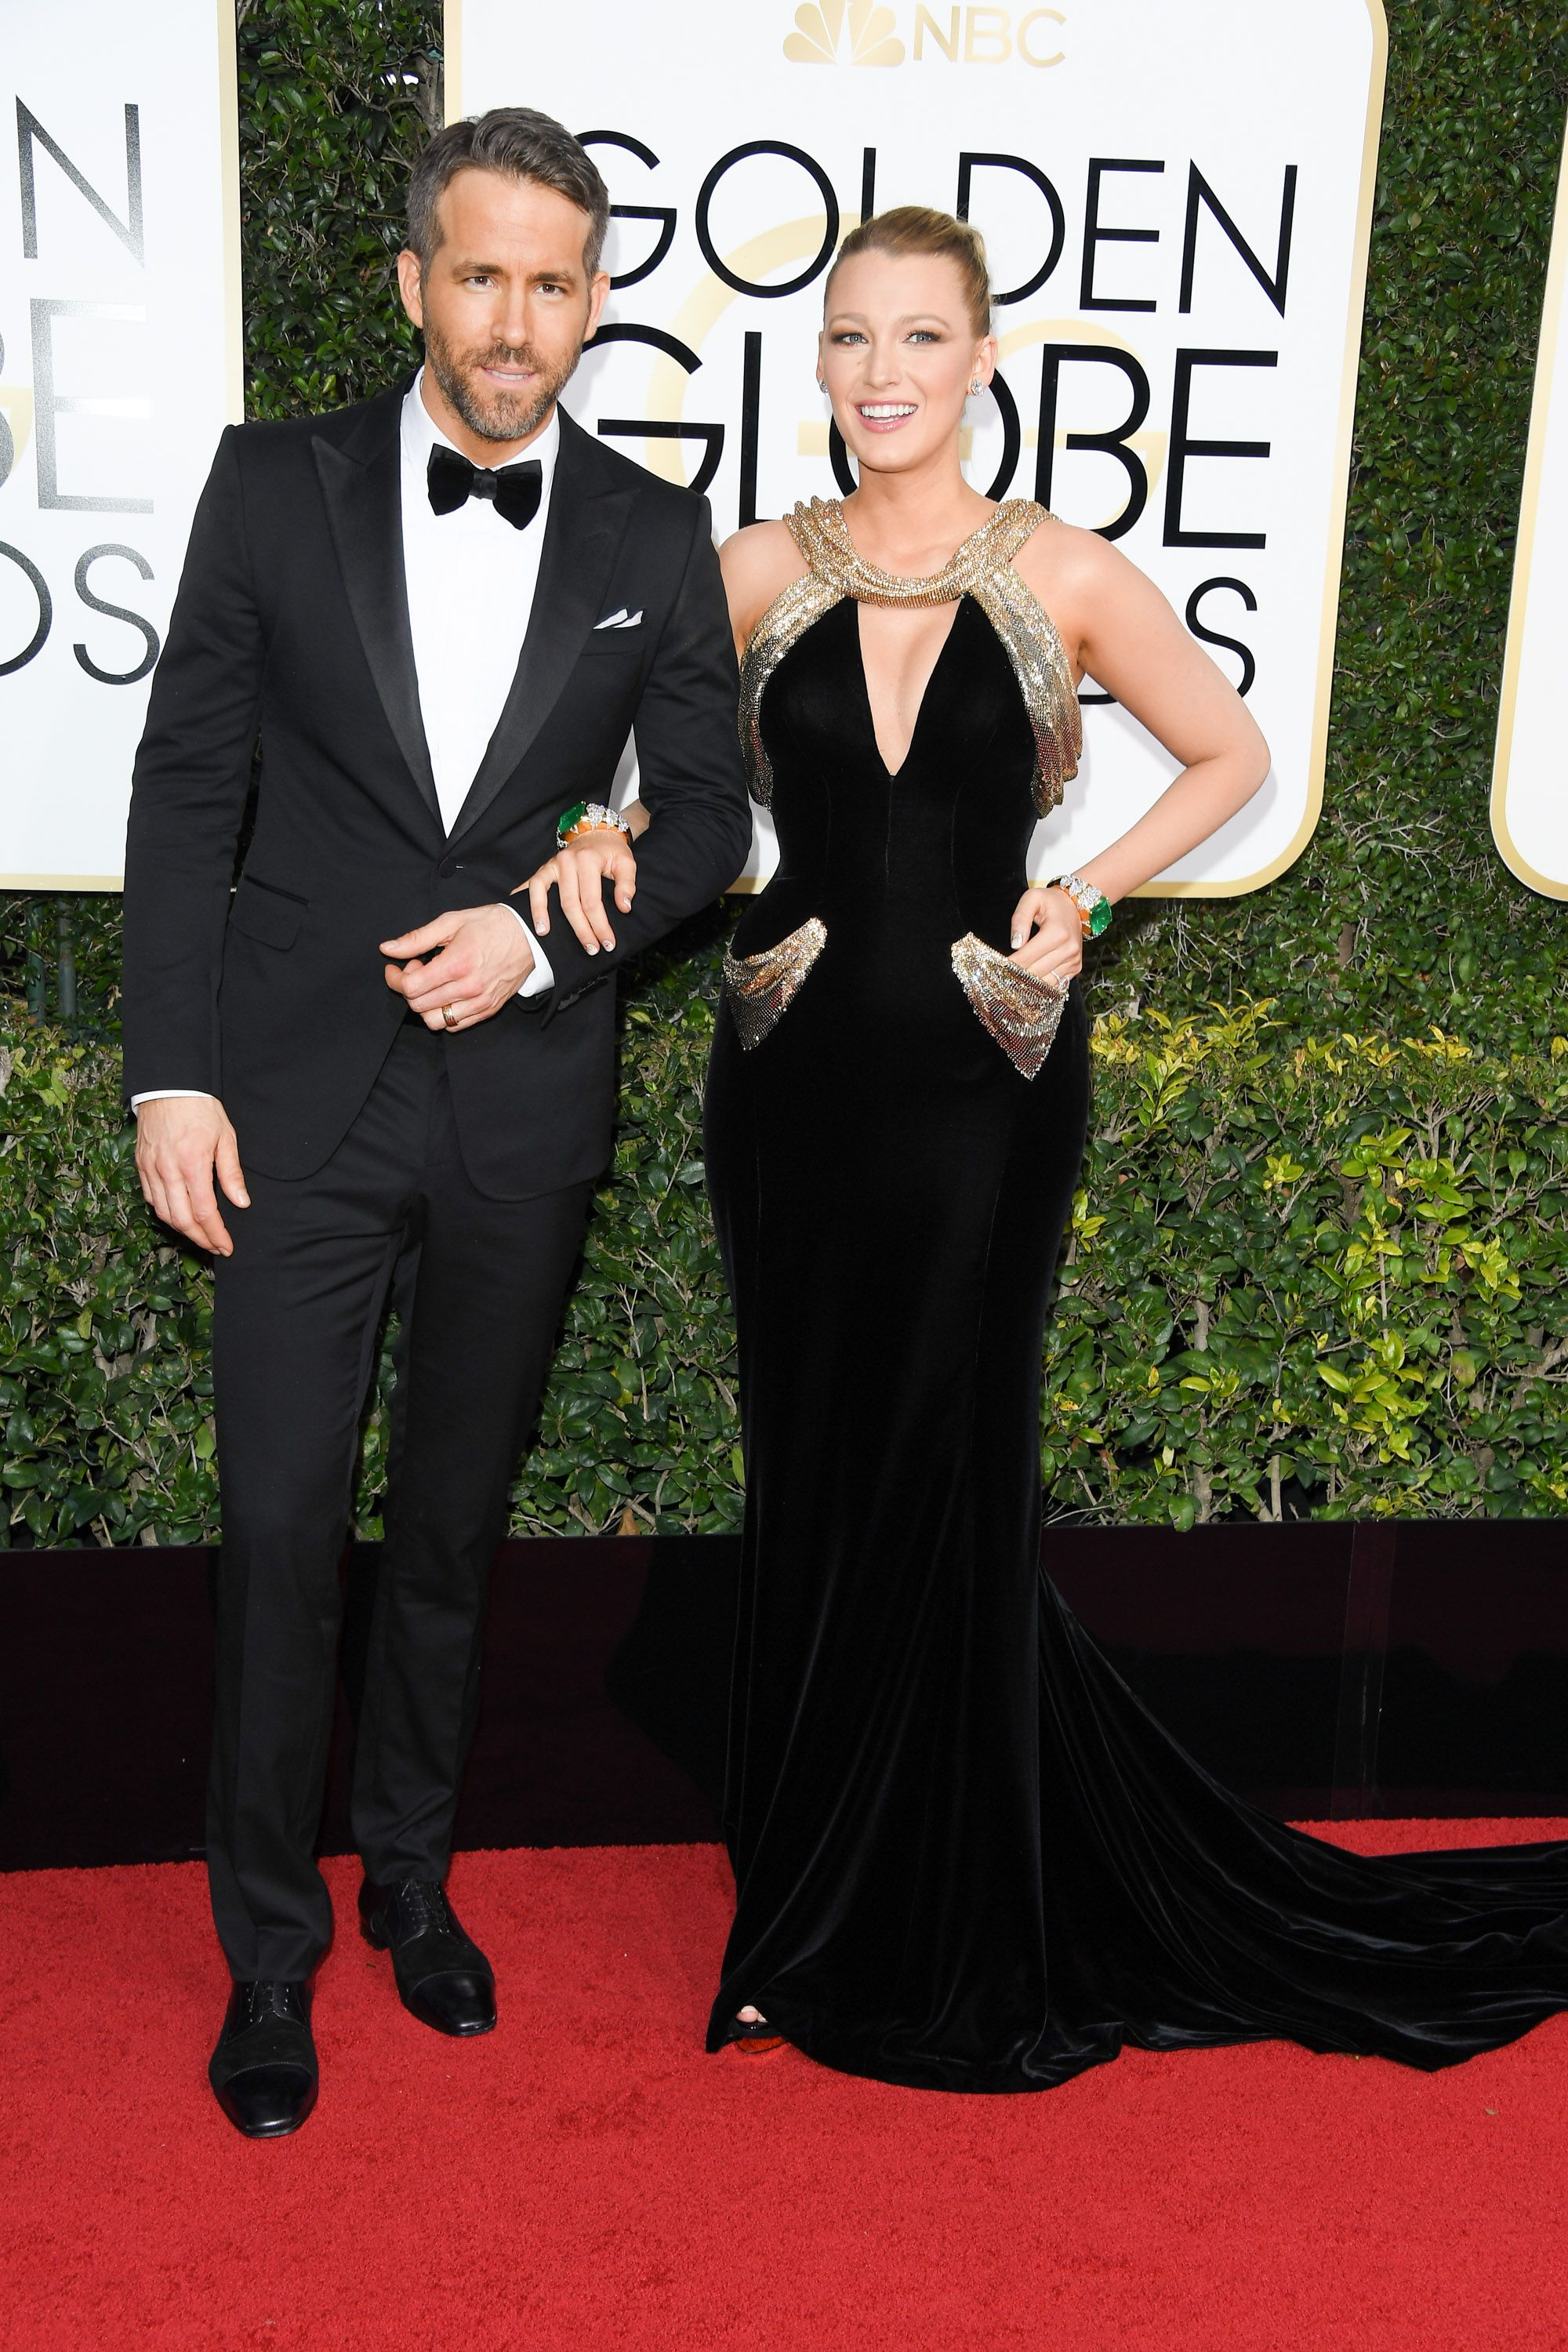 Why Blake Lively and Ryan Reynolds Aren't at the 2021 Golden Globes